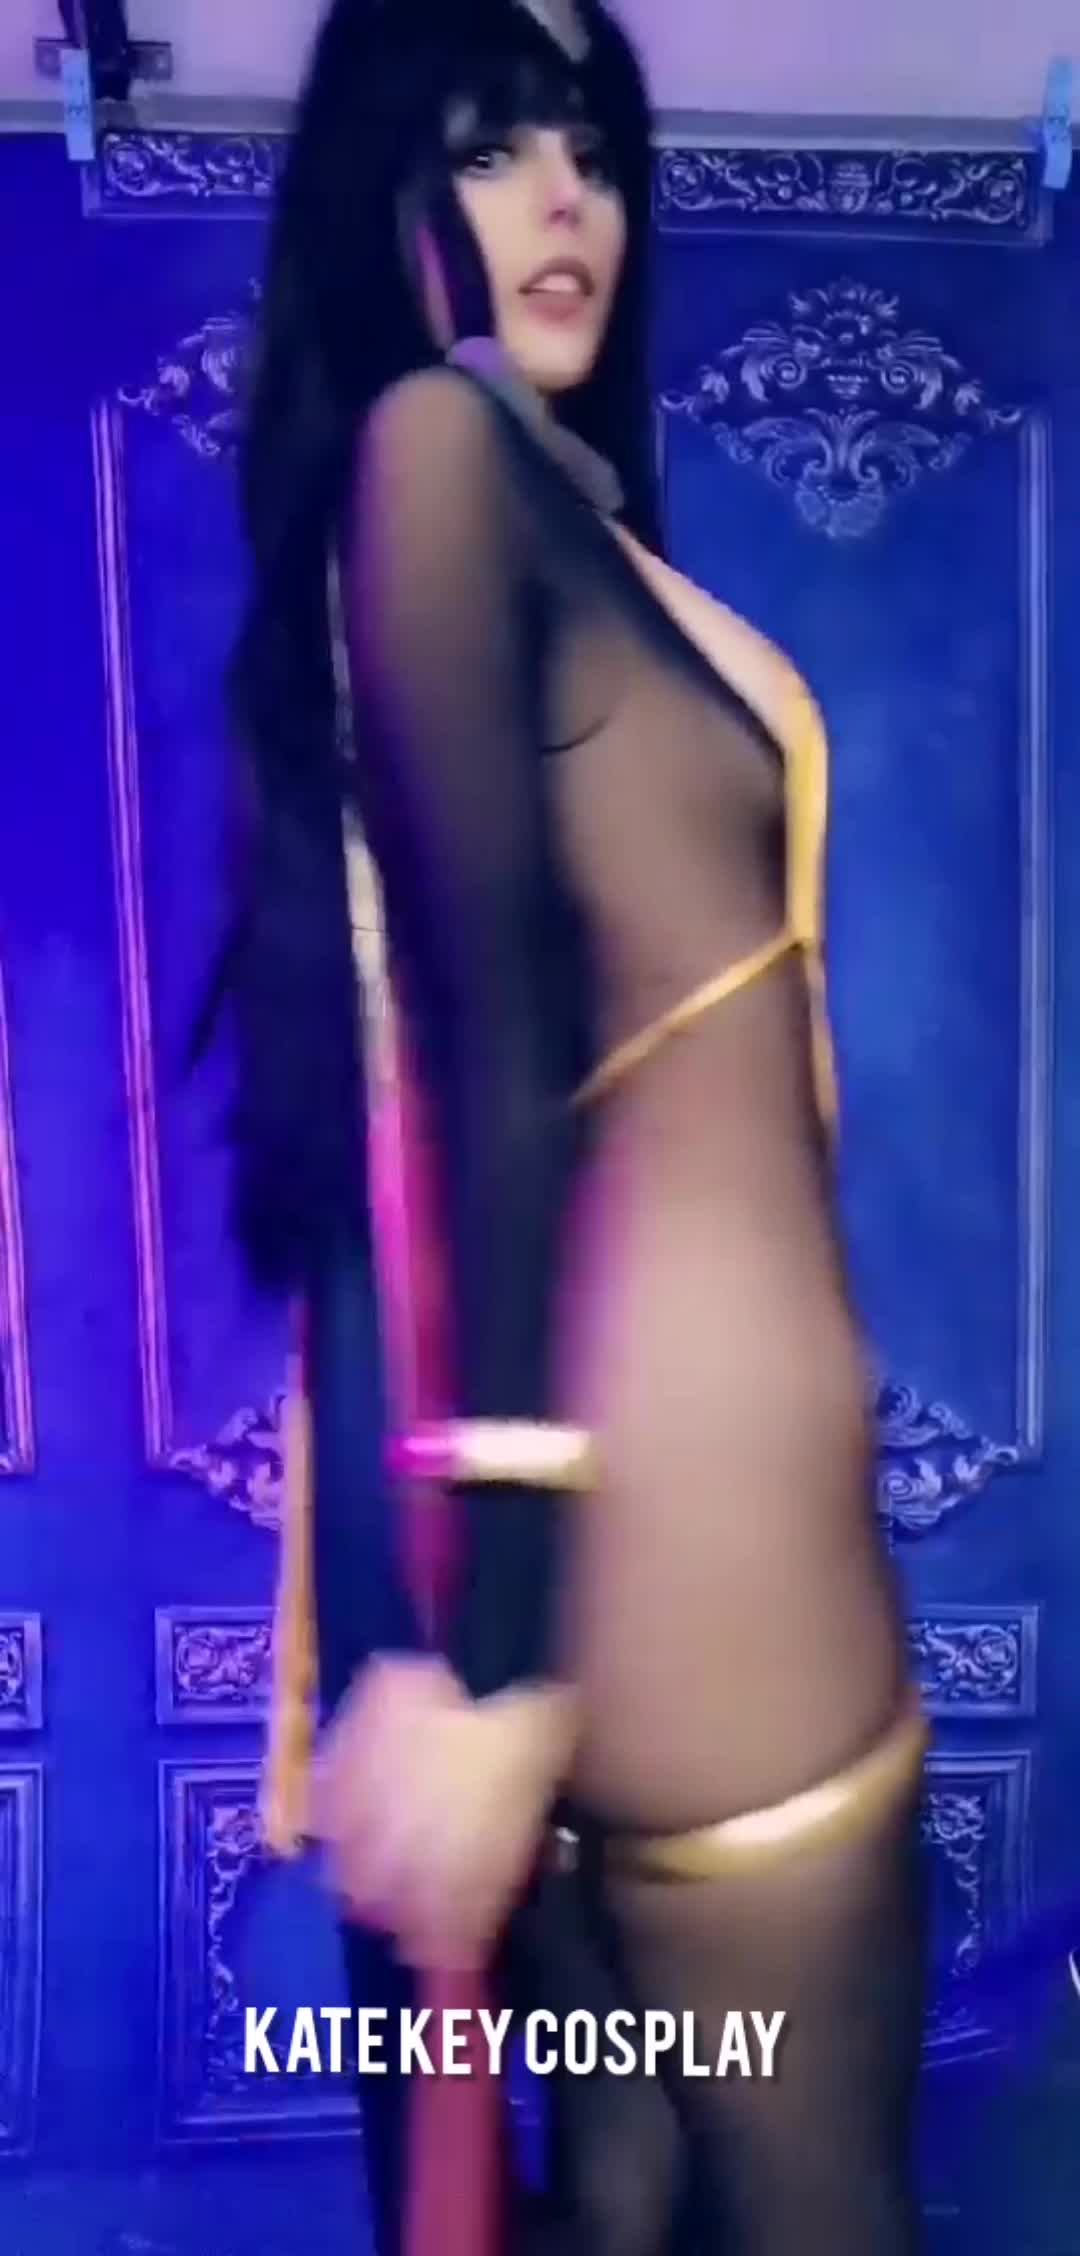 Tharja Booty Needs Some Spanks! by Kate Key